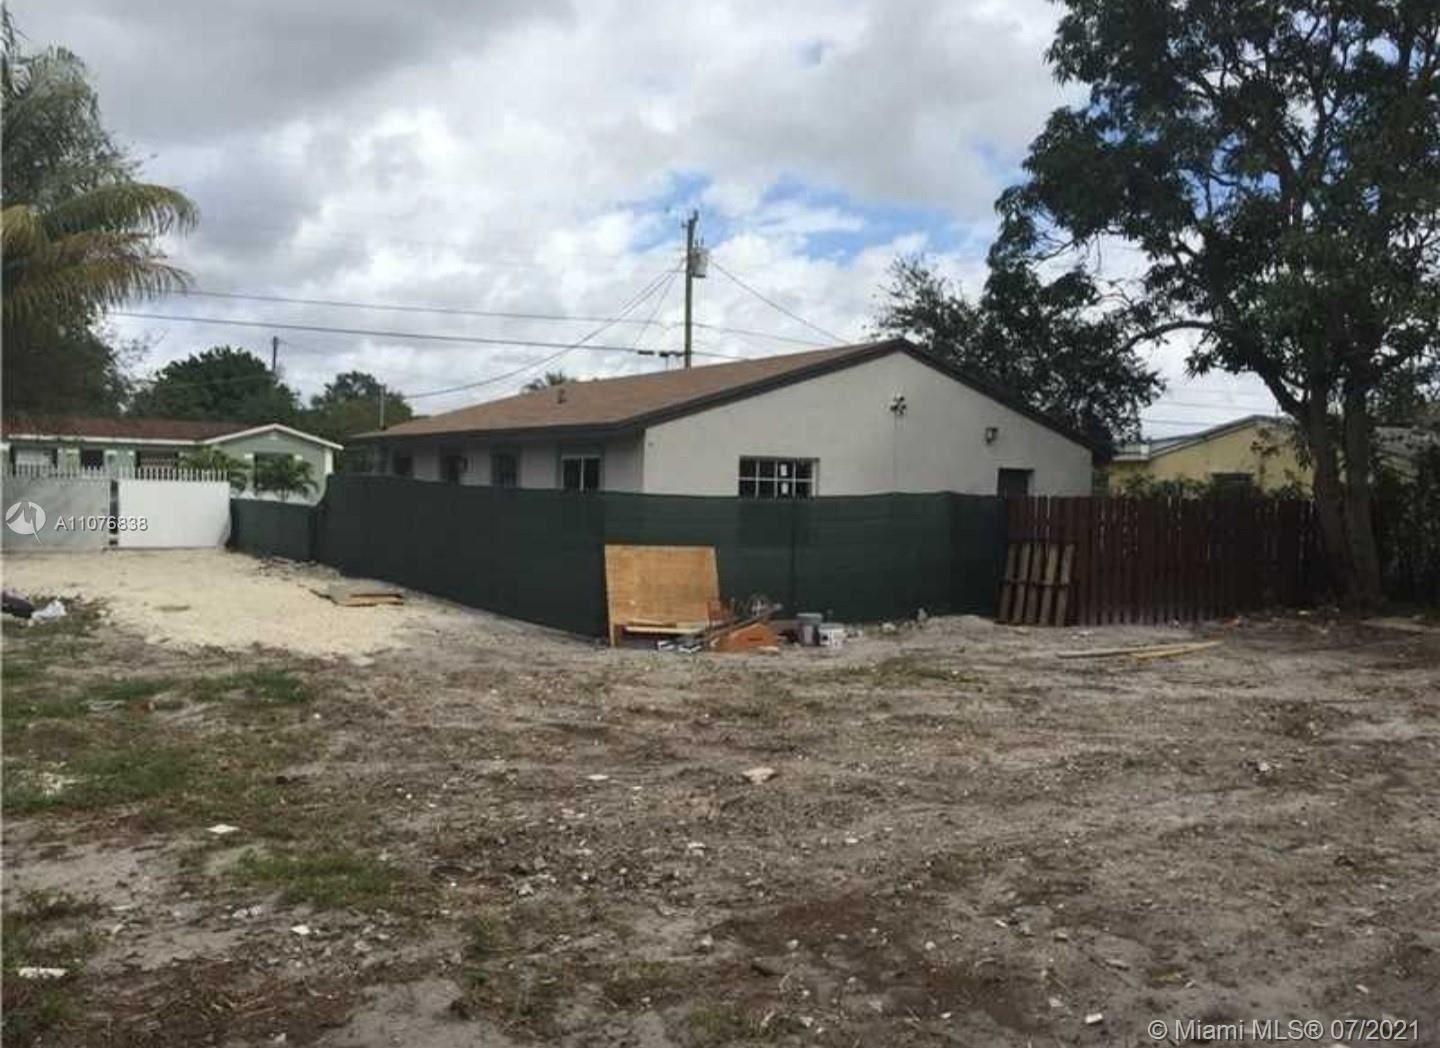 Photo of 2448 NW 102nd St, Miami, FL 33147 (MLS # A11076838)